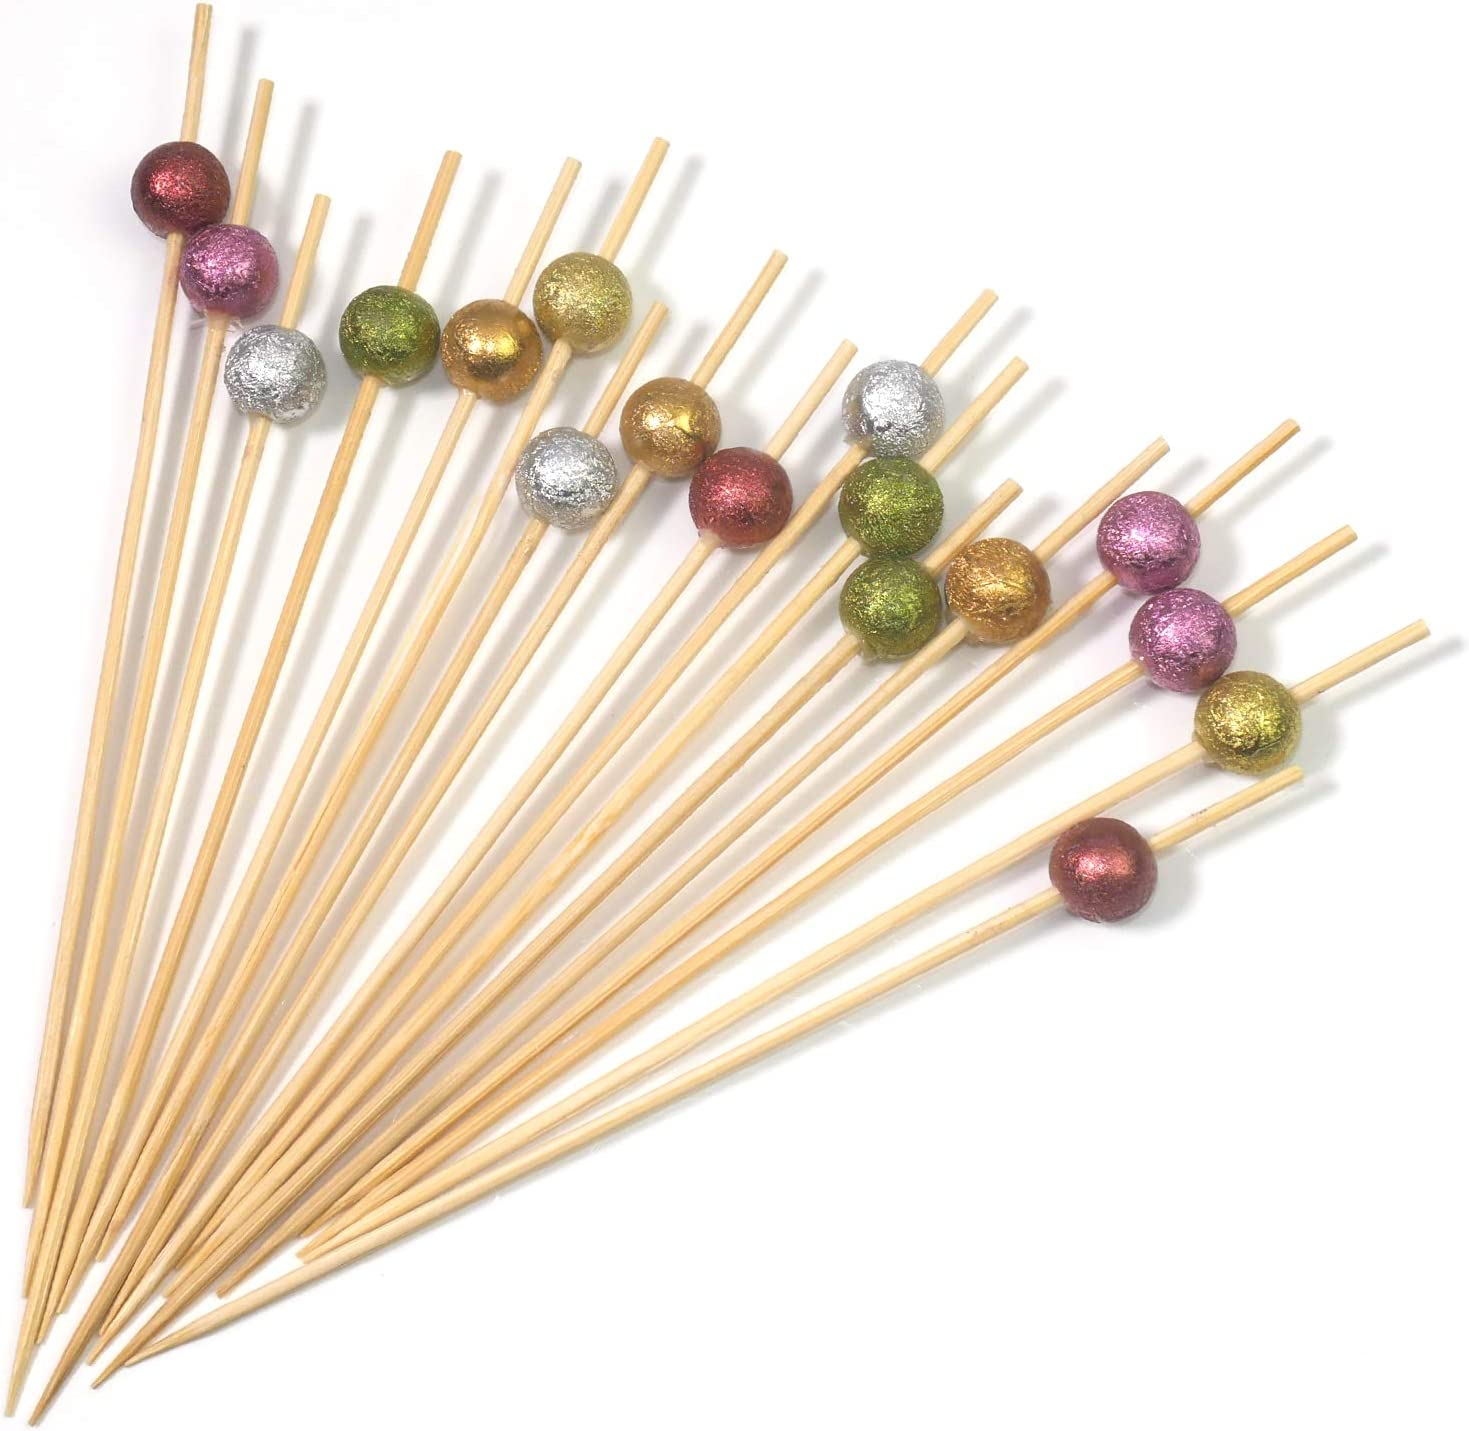 PuTwo Pearl Toothpicks 5 Counts Appetizer Toothpicks 5.5 Inch Decorative  Toothpicks in Assorted Metalic Colors cocktail picks for Appetizer Wooden